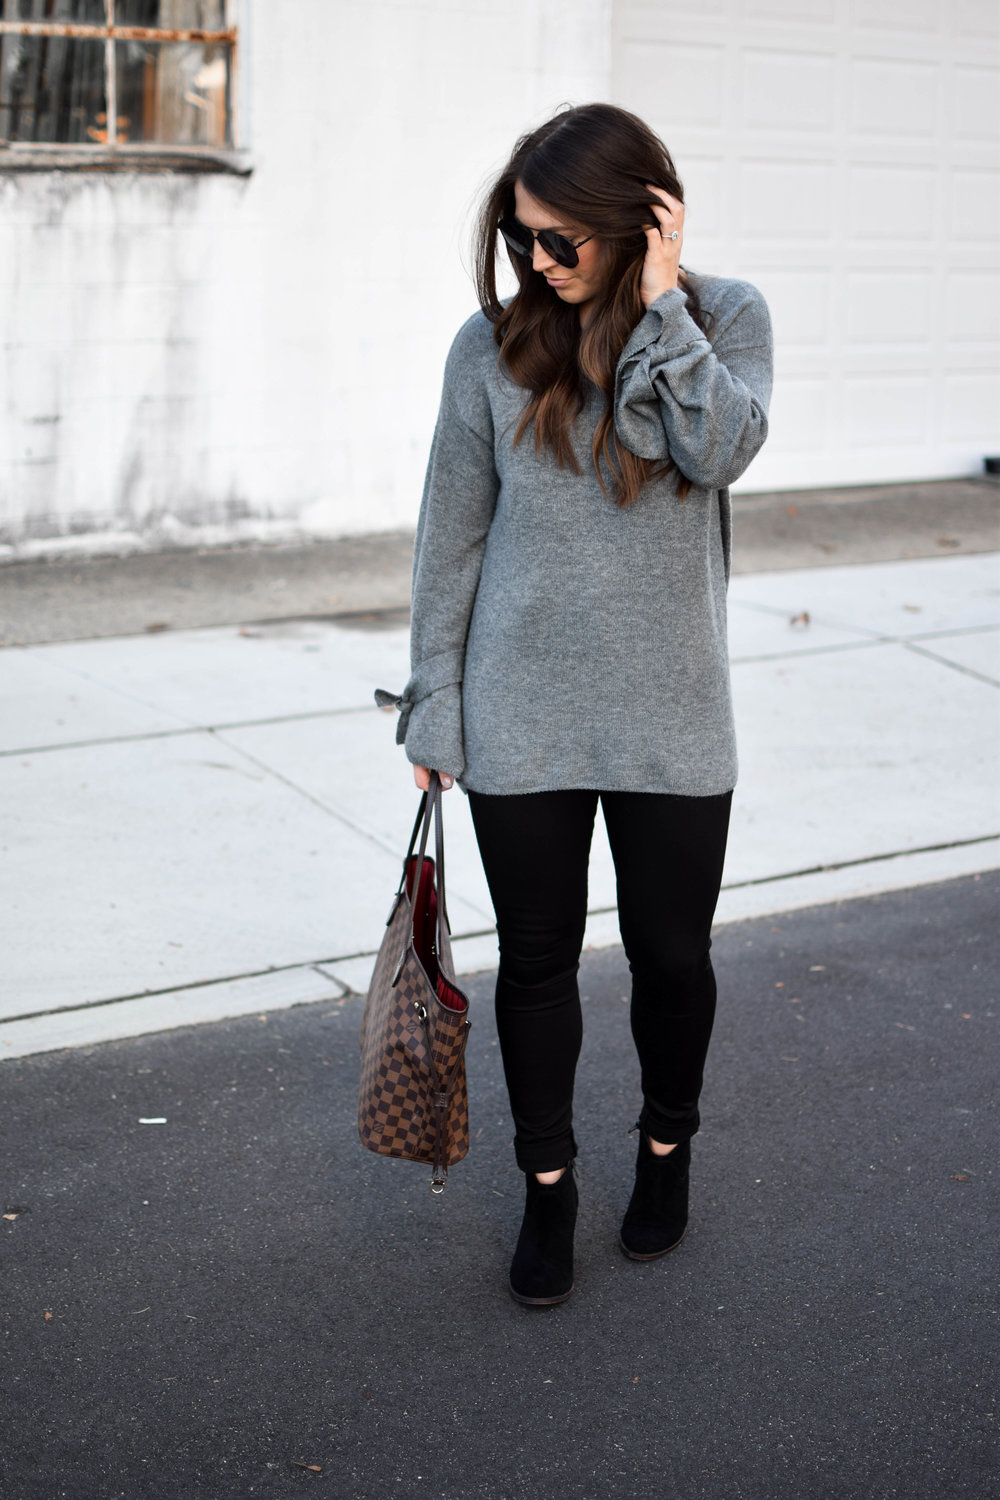 fall fashion / fall outfit idea / fall outfit inspiration / fall closet essentials / black denim / black booties / tie sleeve sweater